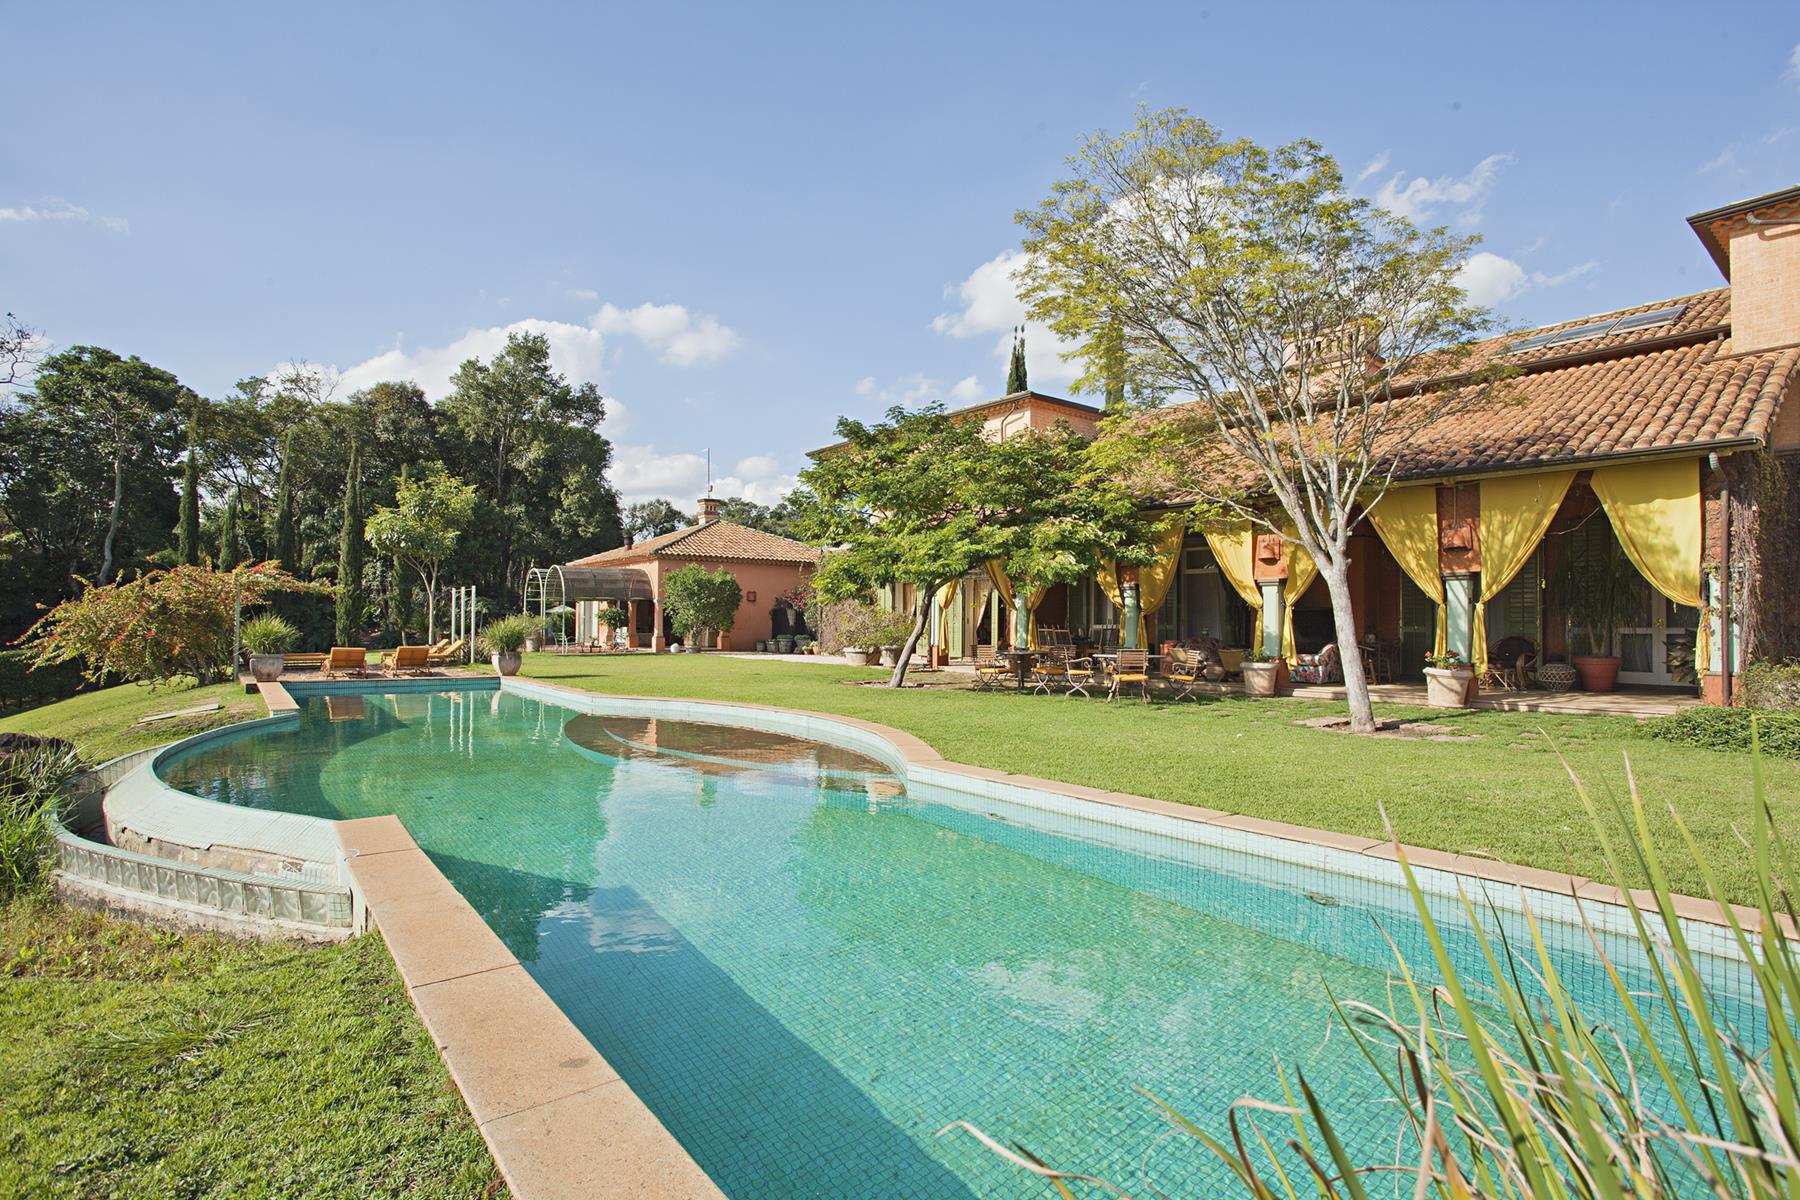 Single Family Home for Sale at House on top of hill with perfect space to enjoy and rest Indaiatuba, Sao Paulo Brazil